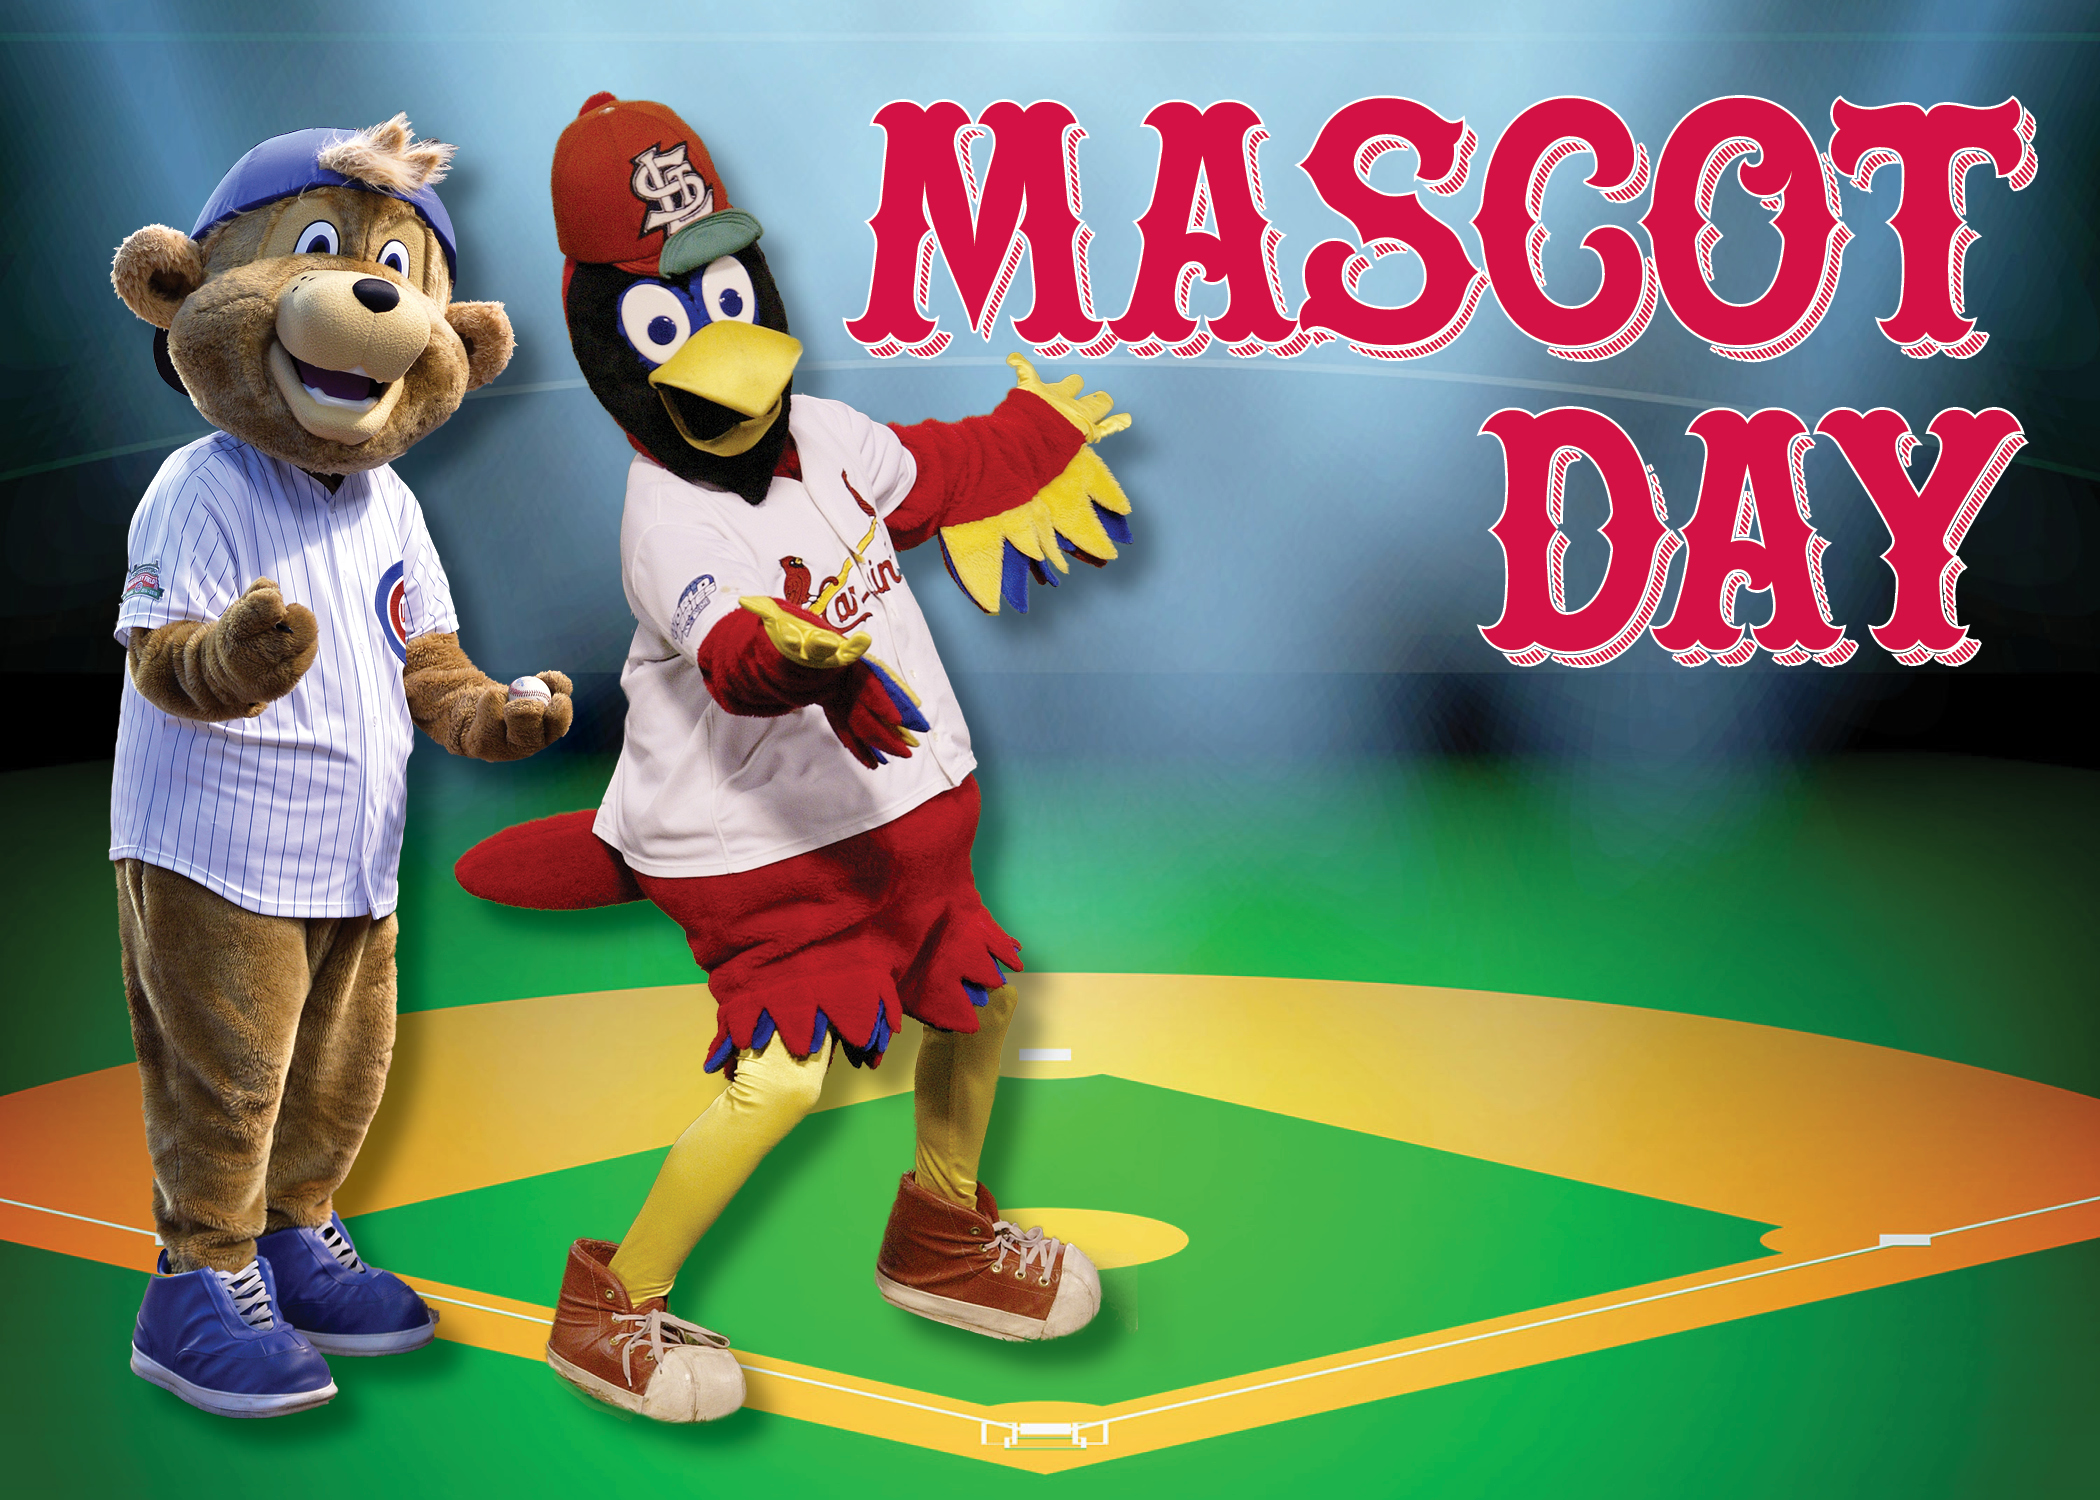 Lincoln Presidential Library welcomes mascots for Cardinals and Cubs on Dec. 16